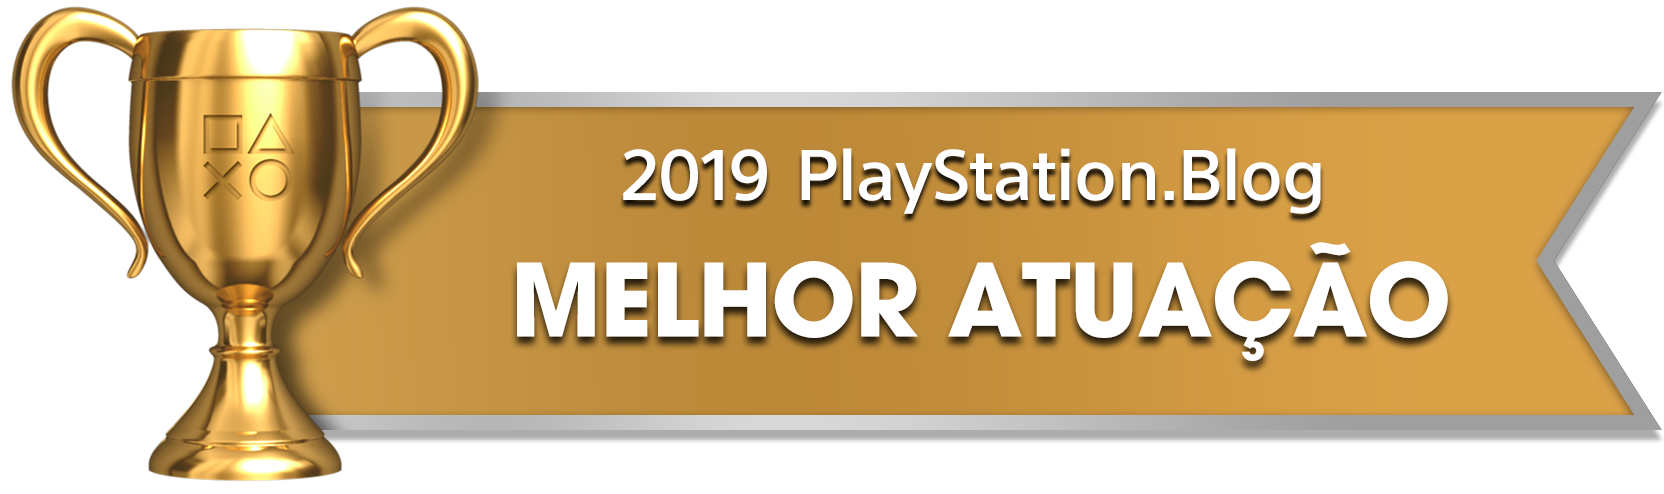 PS Blog Game of the Year 2019 - Best Performance - 2 - Gold